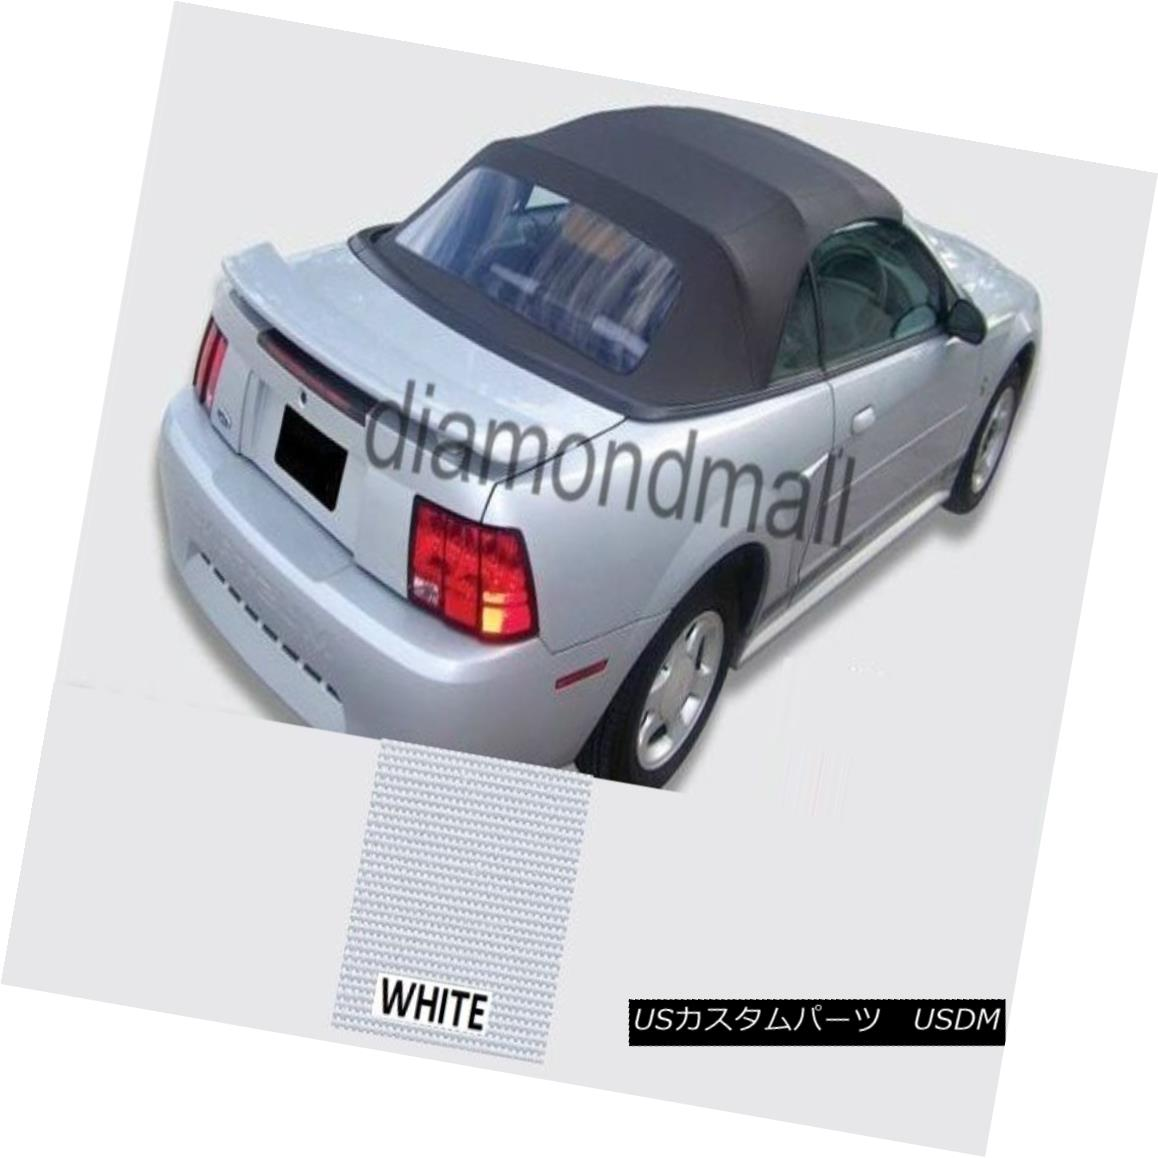 幌・ソフトトップ Ford mustang Convertible Soft top With Plastic window WHITE Sailcloth 1994-2004 フォードmustangコンバーチブルソフトトッププラスチック窓WHITE Sailcloth 1994-2004